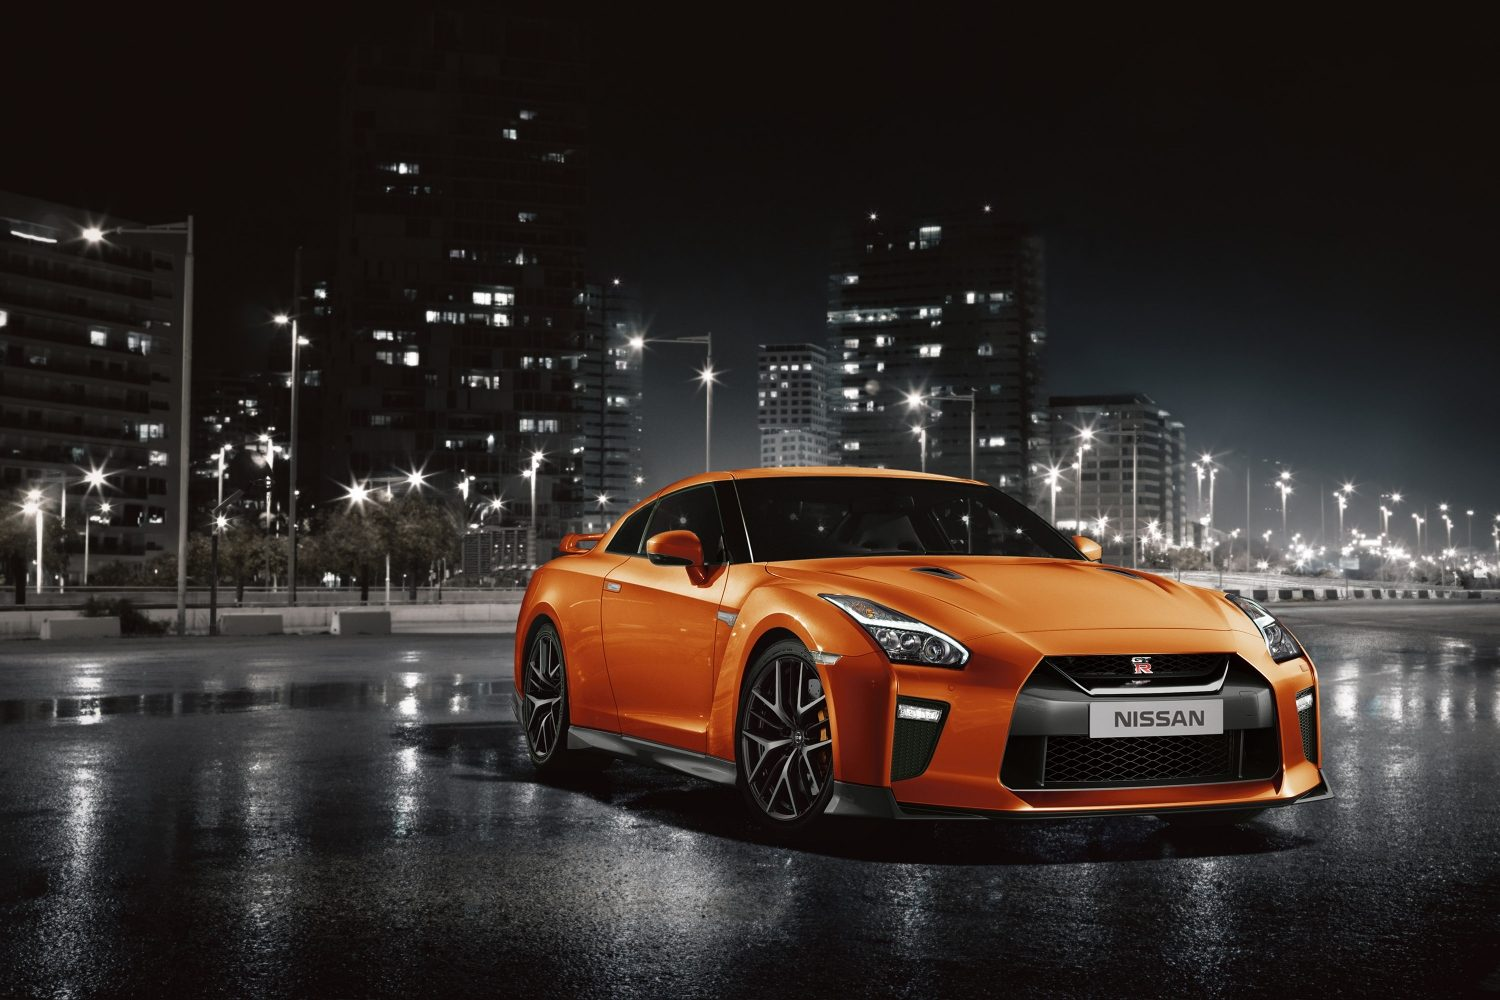 Nissan GT-R Specifications, Price, Mileage, Pics, Review